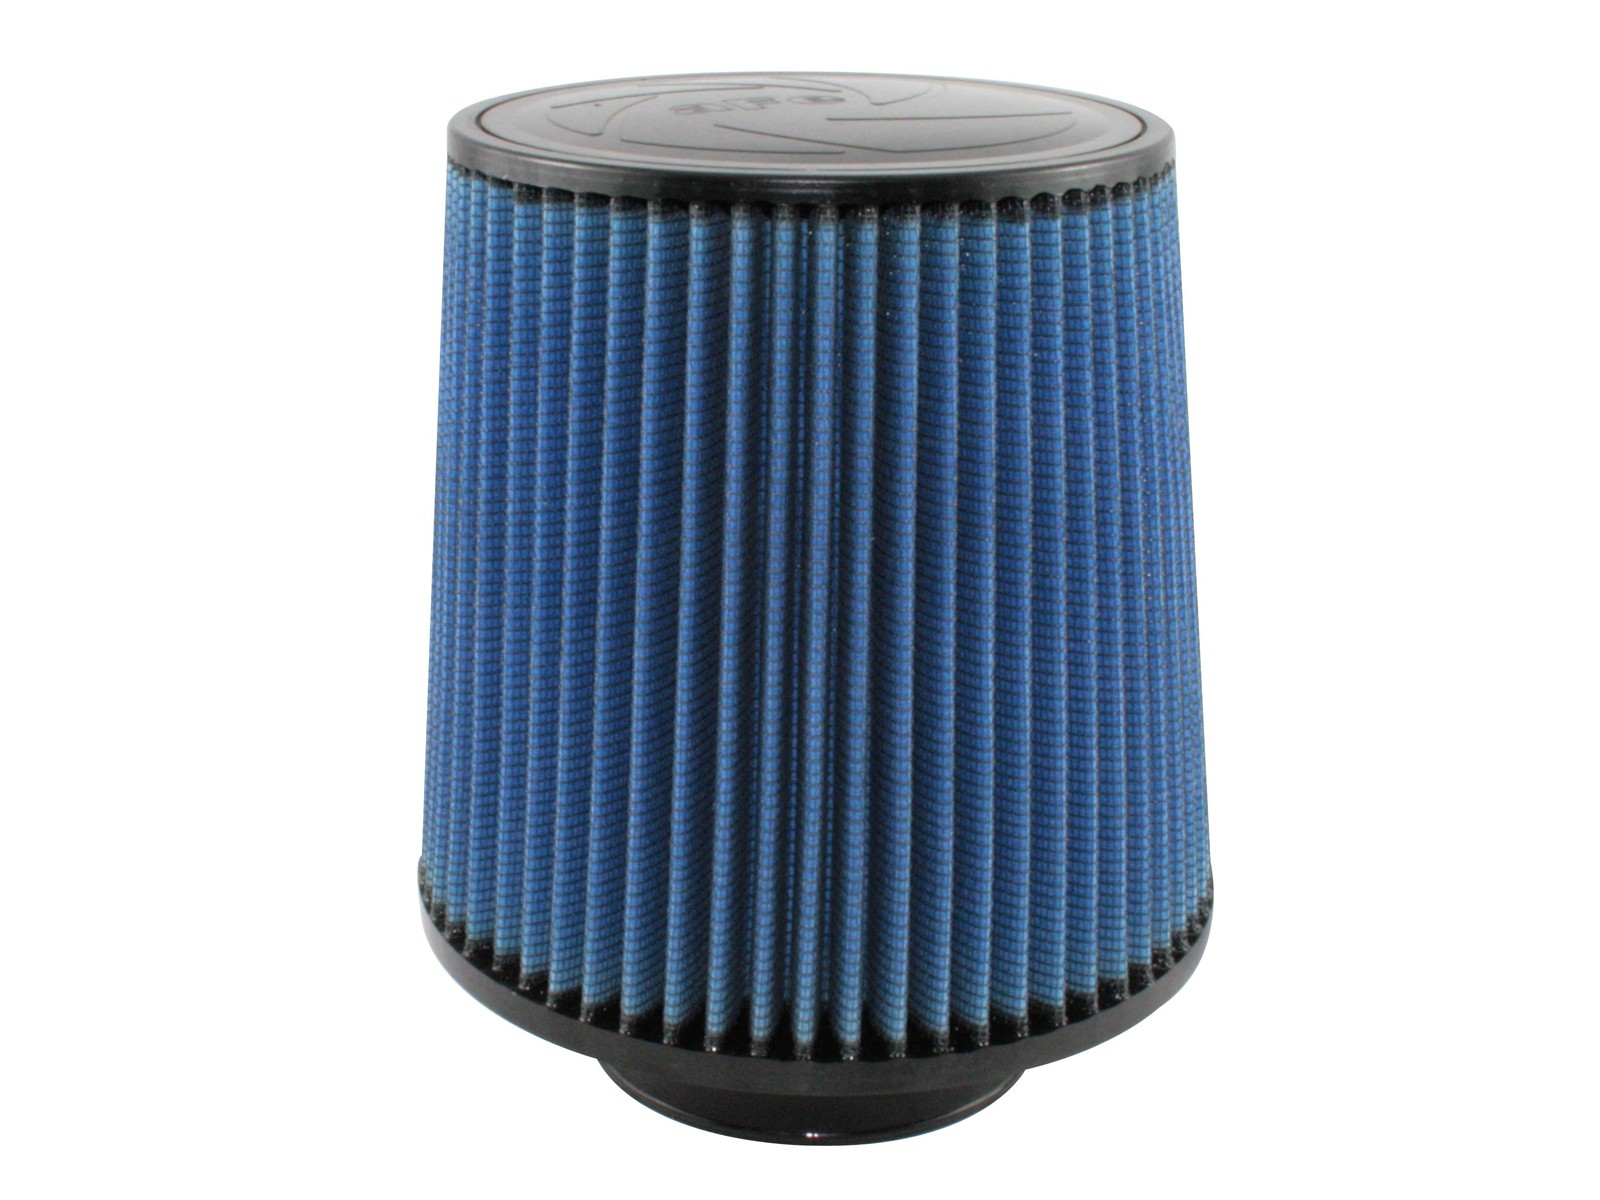 aFe POWER 24-90010 Magnum FLOW Pro 5R Air Filter